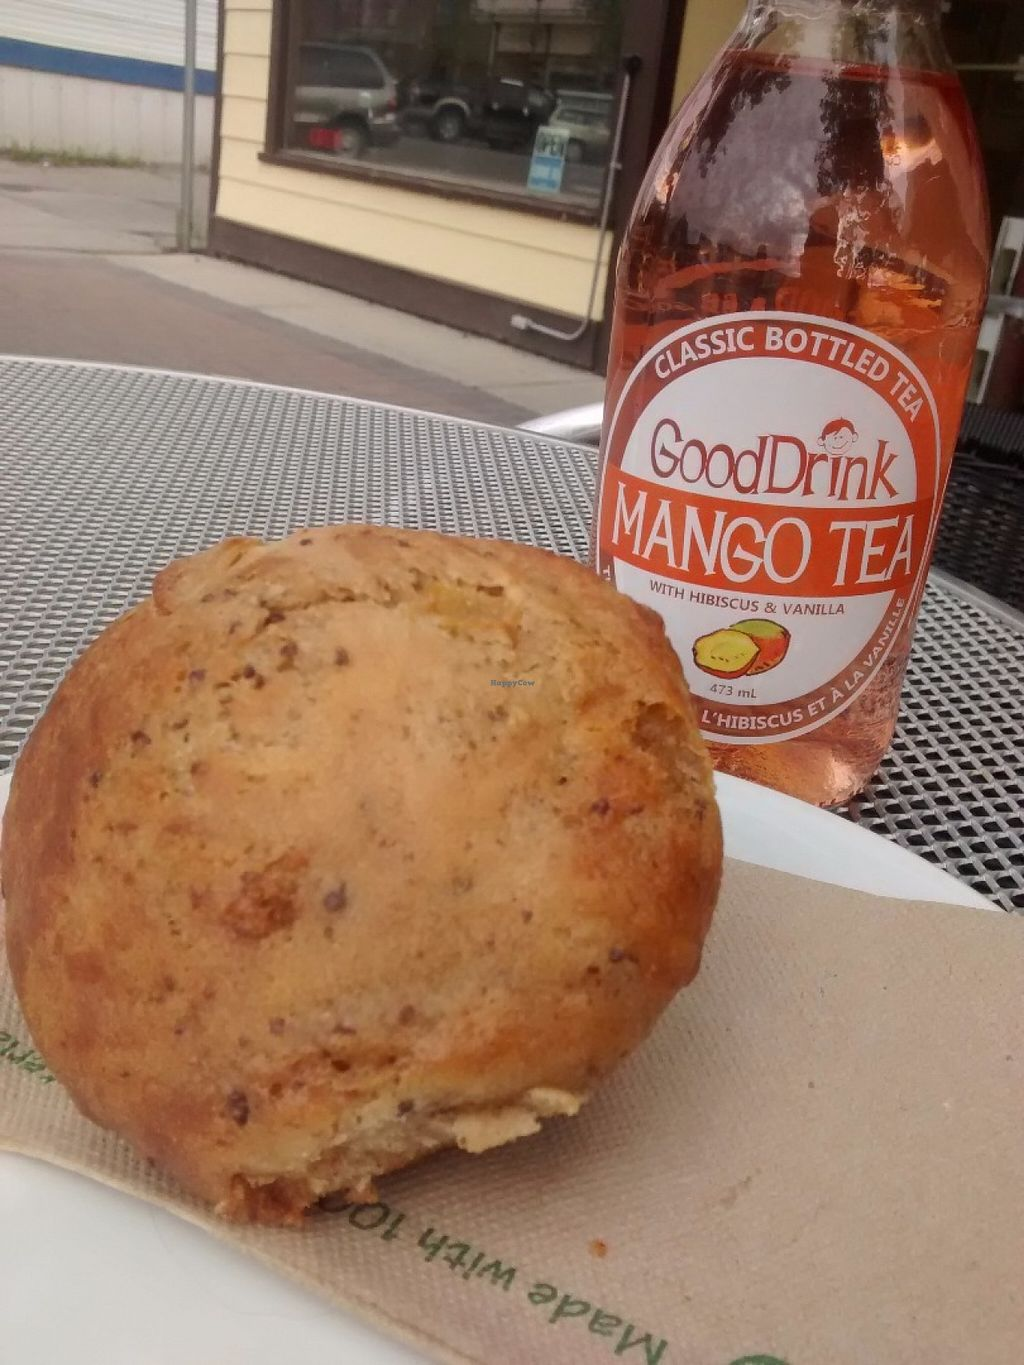 """Photo of Baked Cafe  by <a href=""""/members/profile/QuothTheRaven"""">QuothTheRaven</a> <br/>Vegan Apple raisin muffin and good drink tea  <br/> June 22, 2016  - <a href='/contact/abuse/image/22513/155491'>Report</a>"""